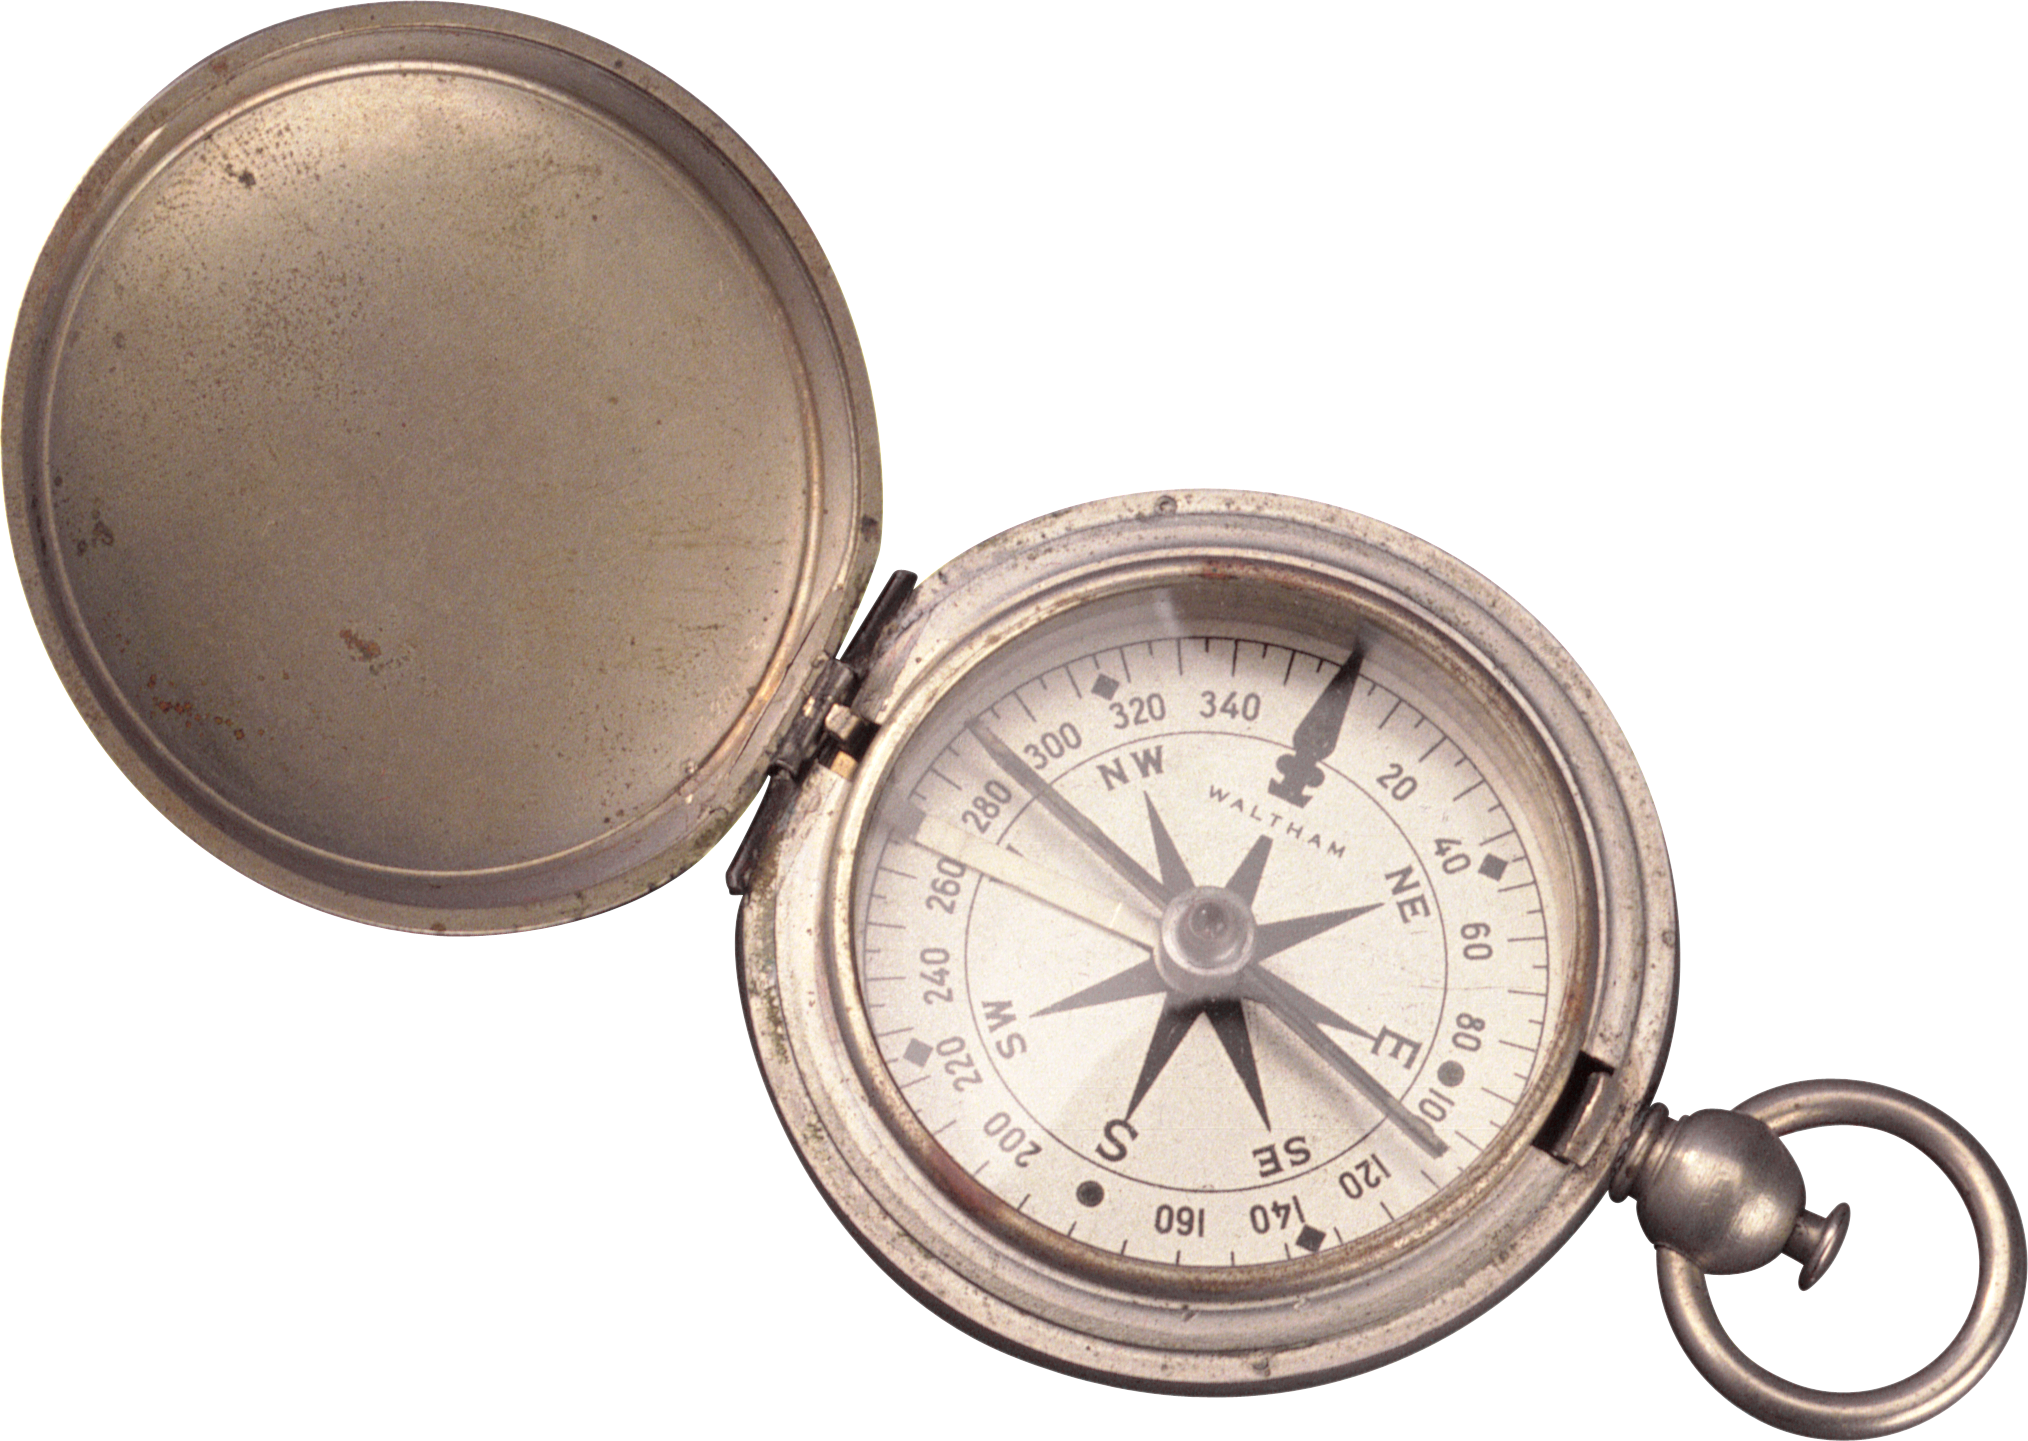 Png images free download. Geography clipart magnetic compass